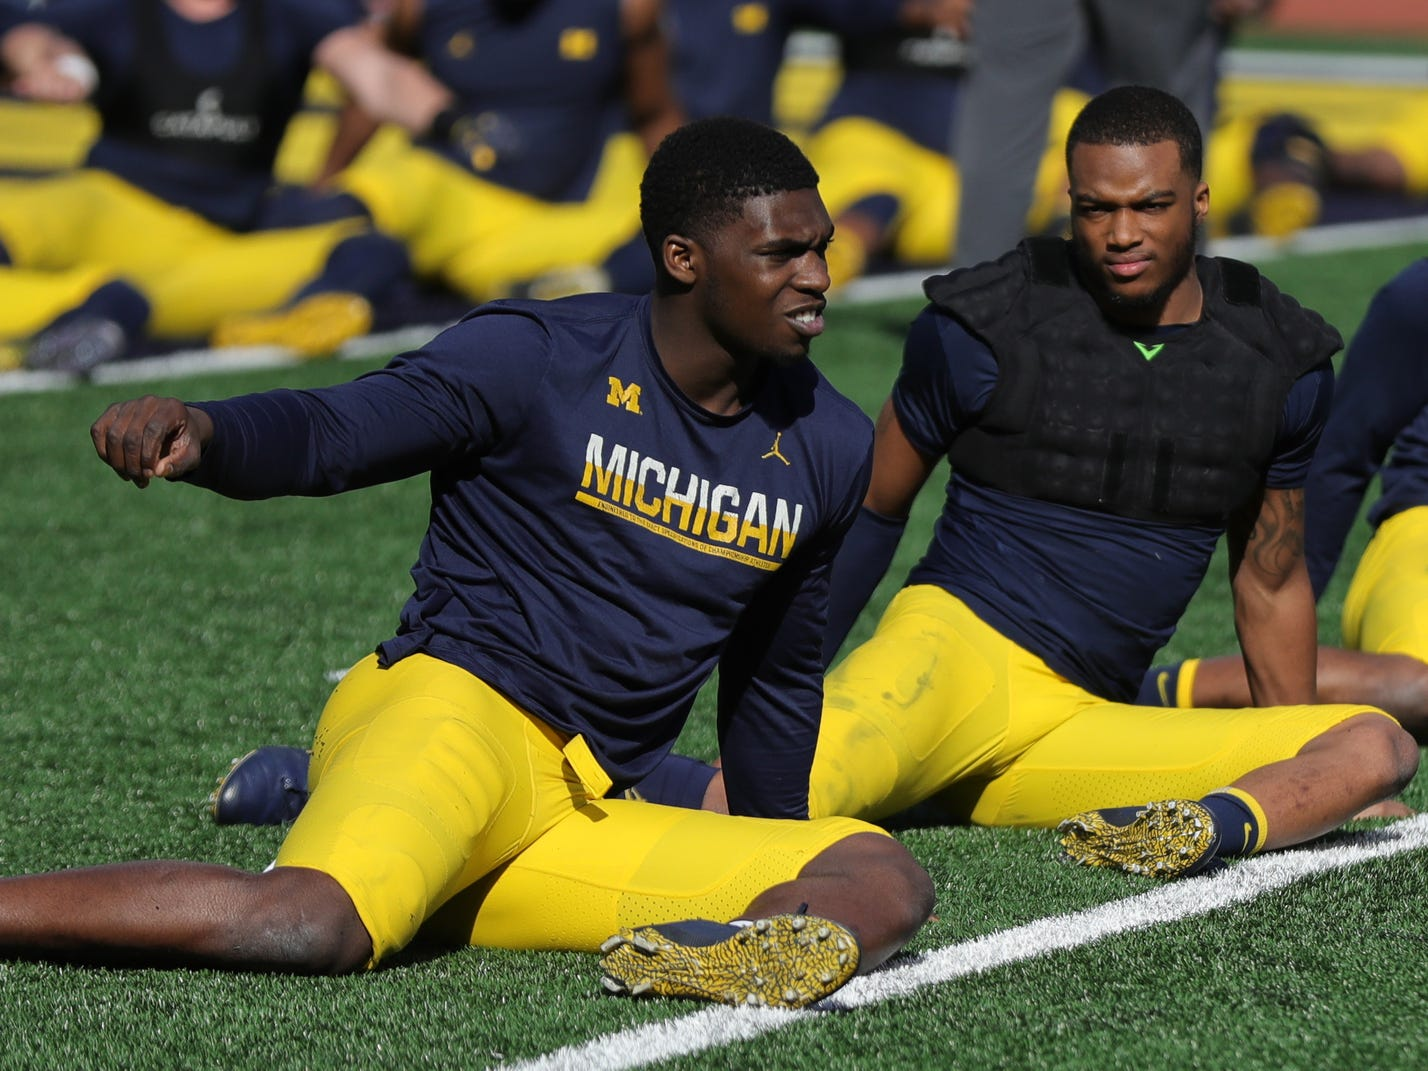 Michigan players stretch before the spring game Saturday, April 13, 2019 at Michigan Stadium in Ann Arbor.